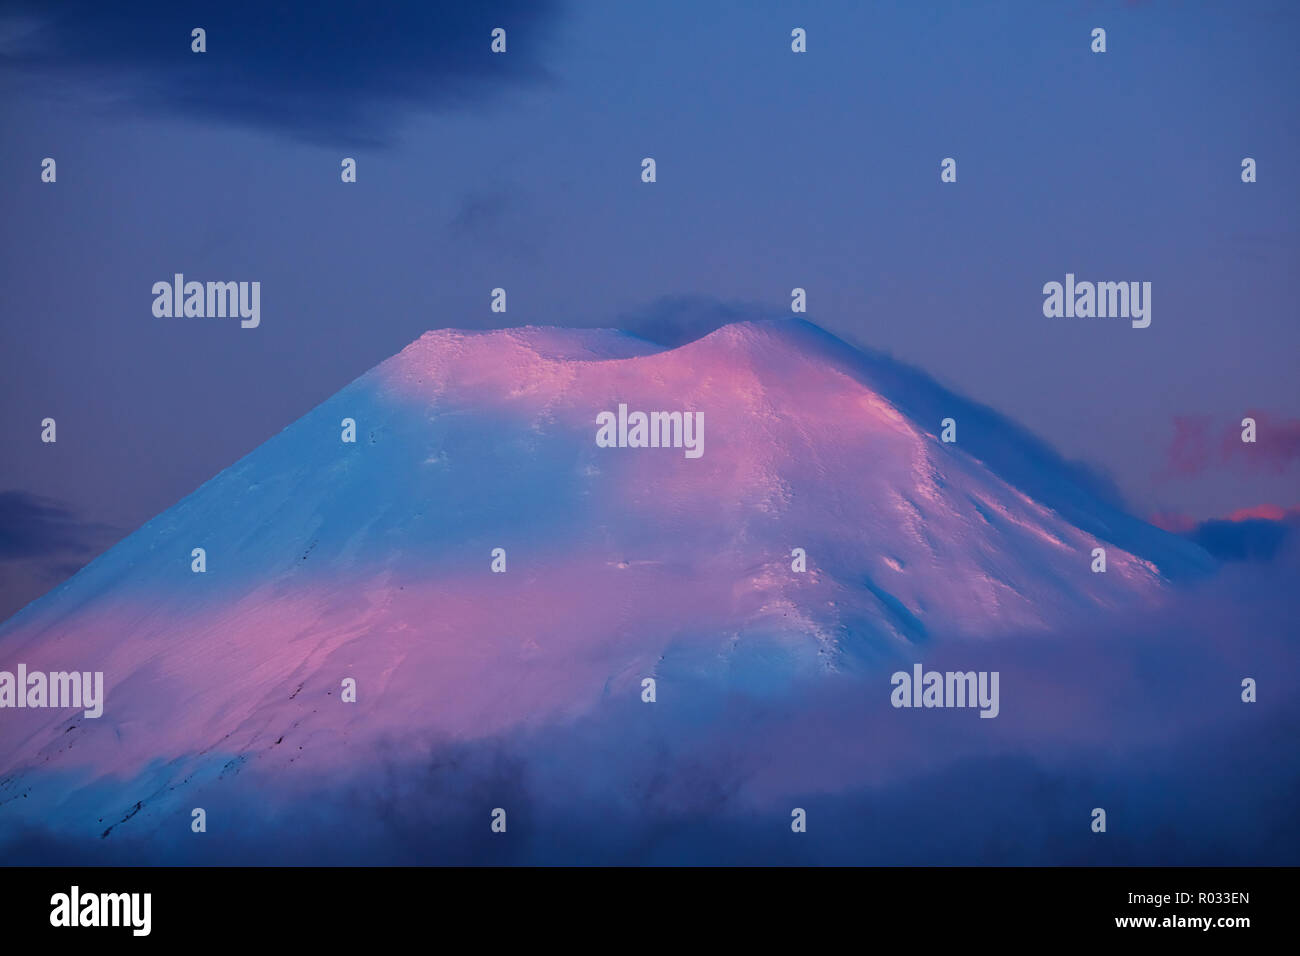 Alpenglow on Mt Ngauruhoe at sunset, Tongariro National Park, Central Plateau, North Island, New Zealand - Stock Image